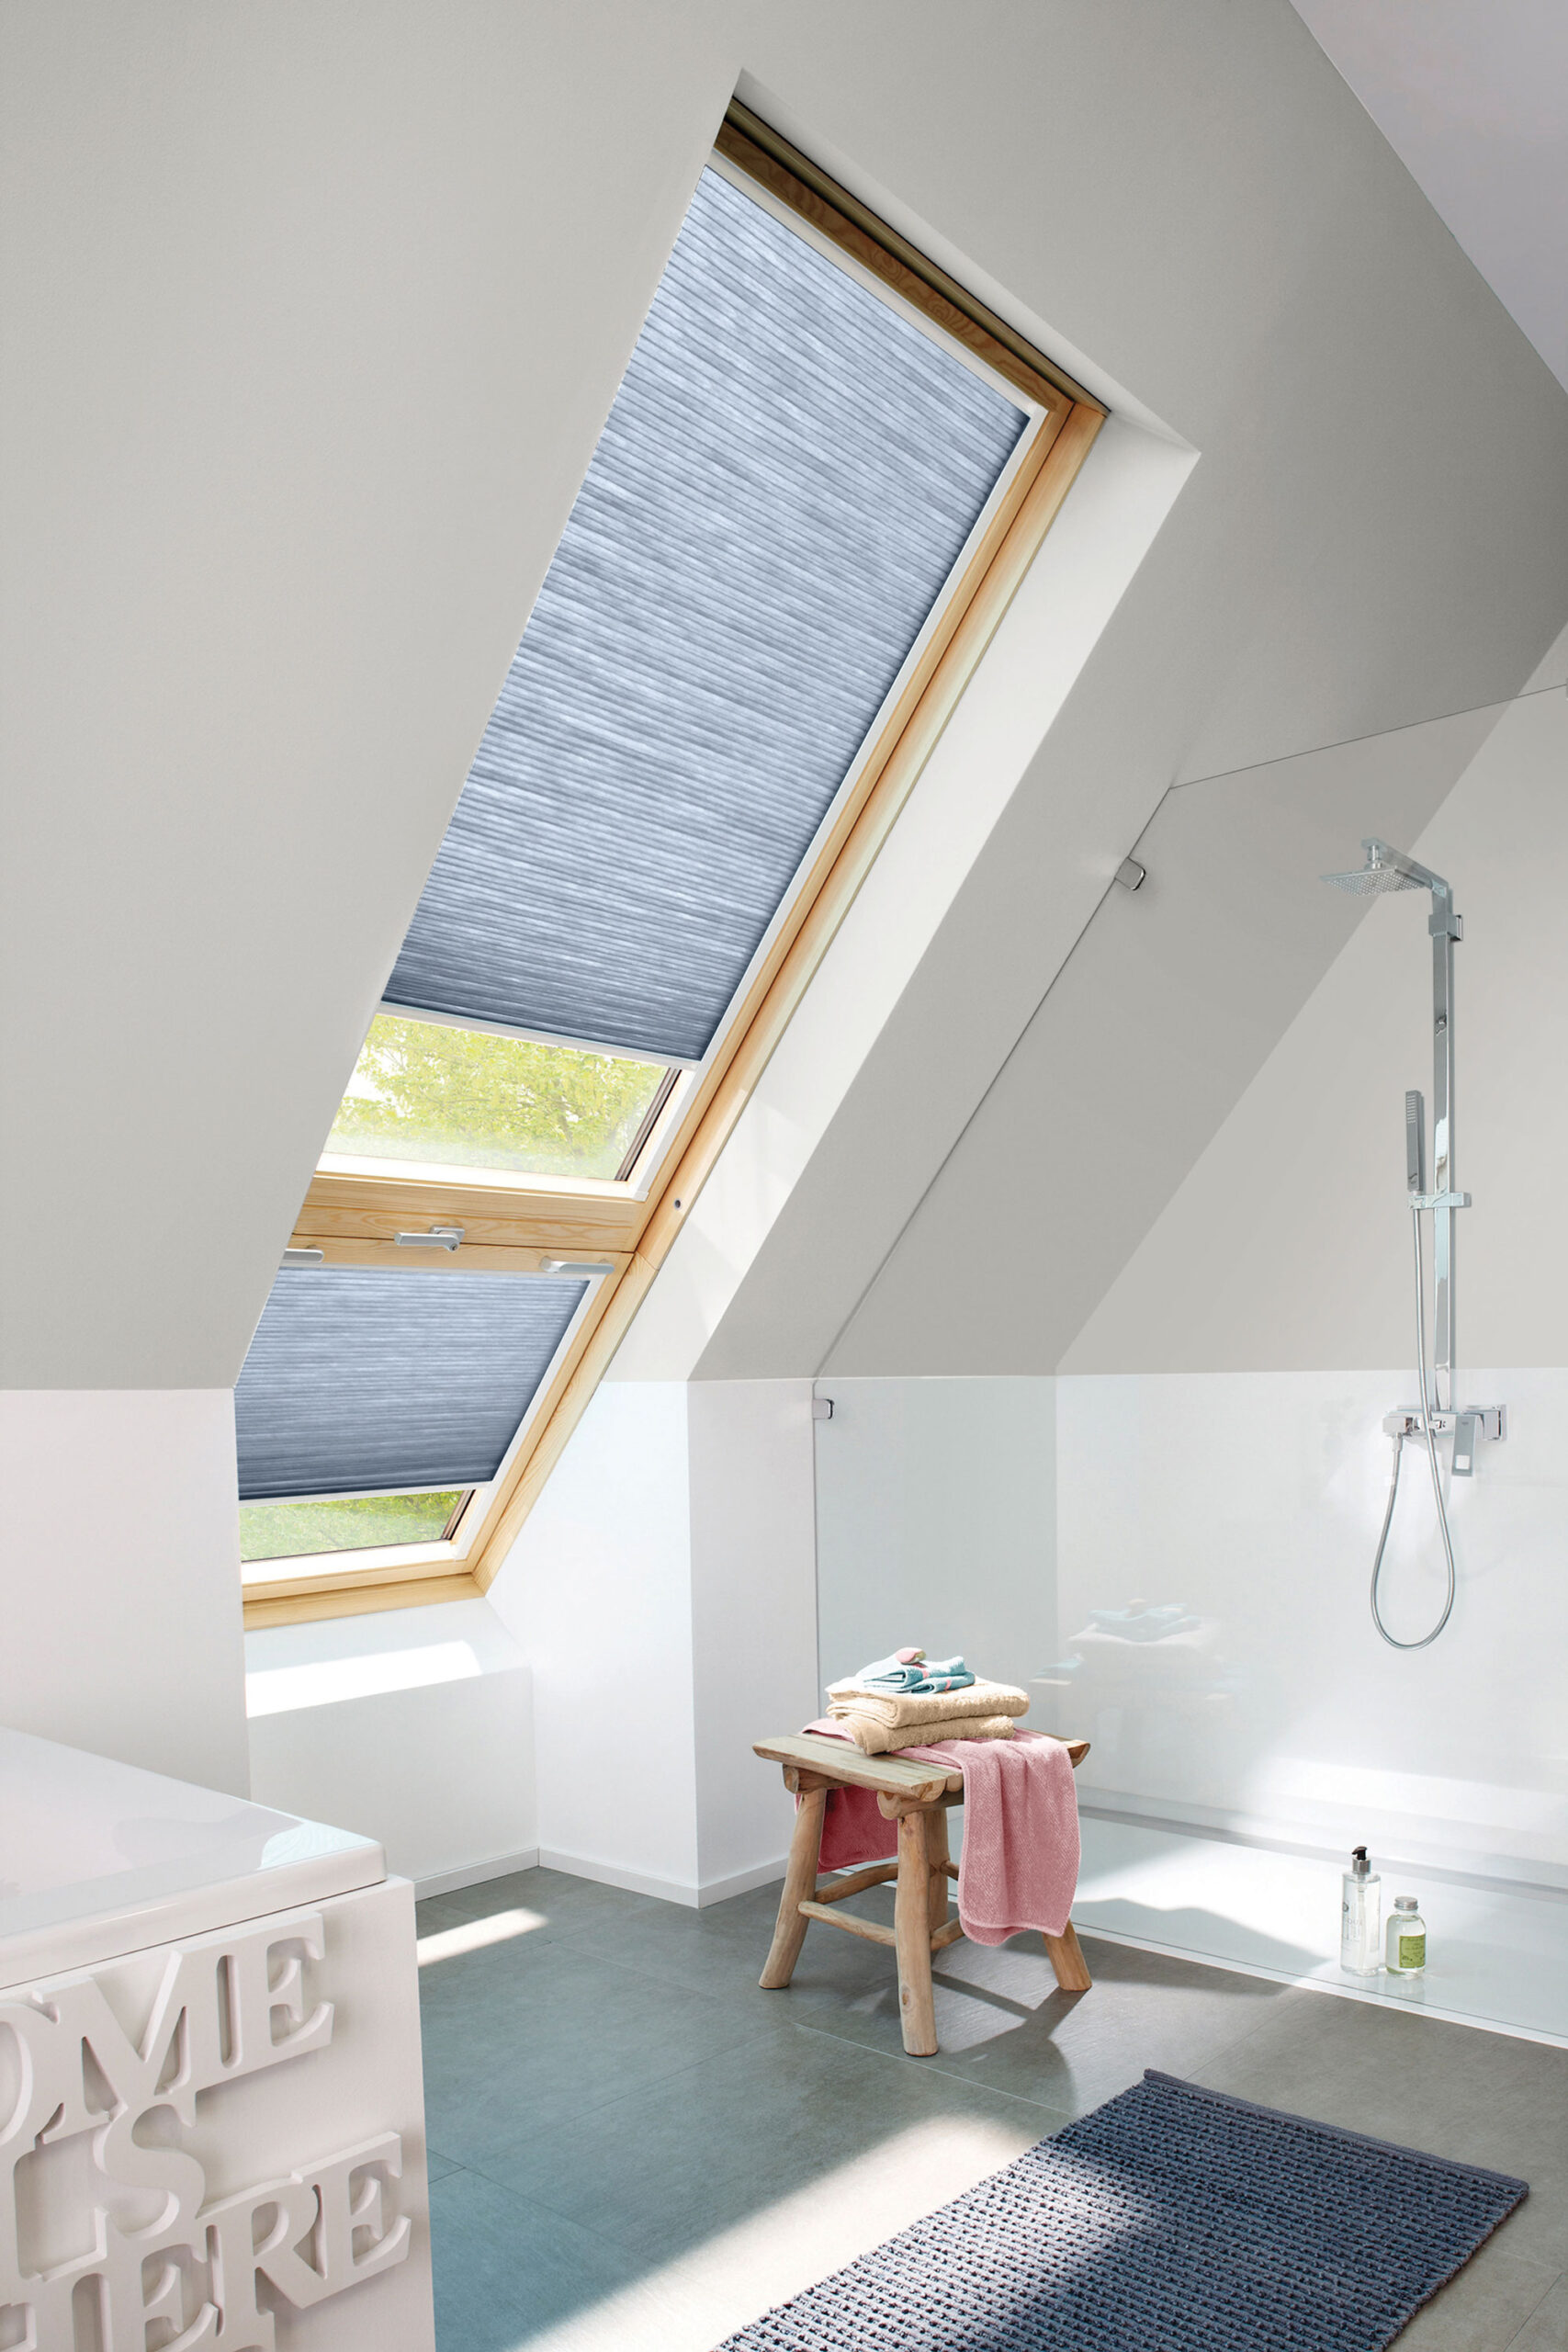 sky light Atrium window coverings